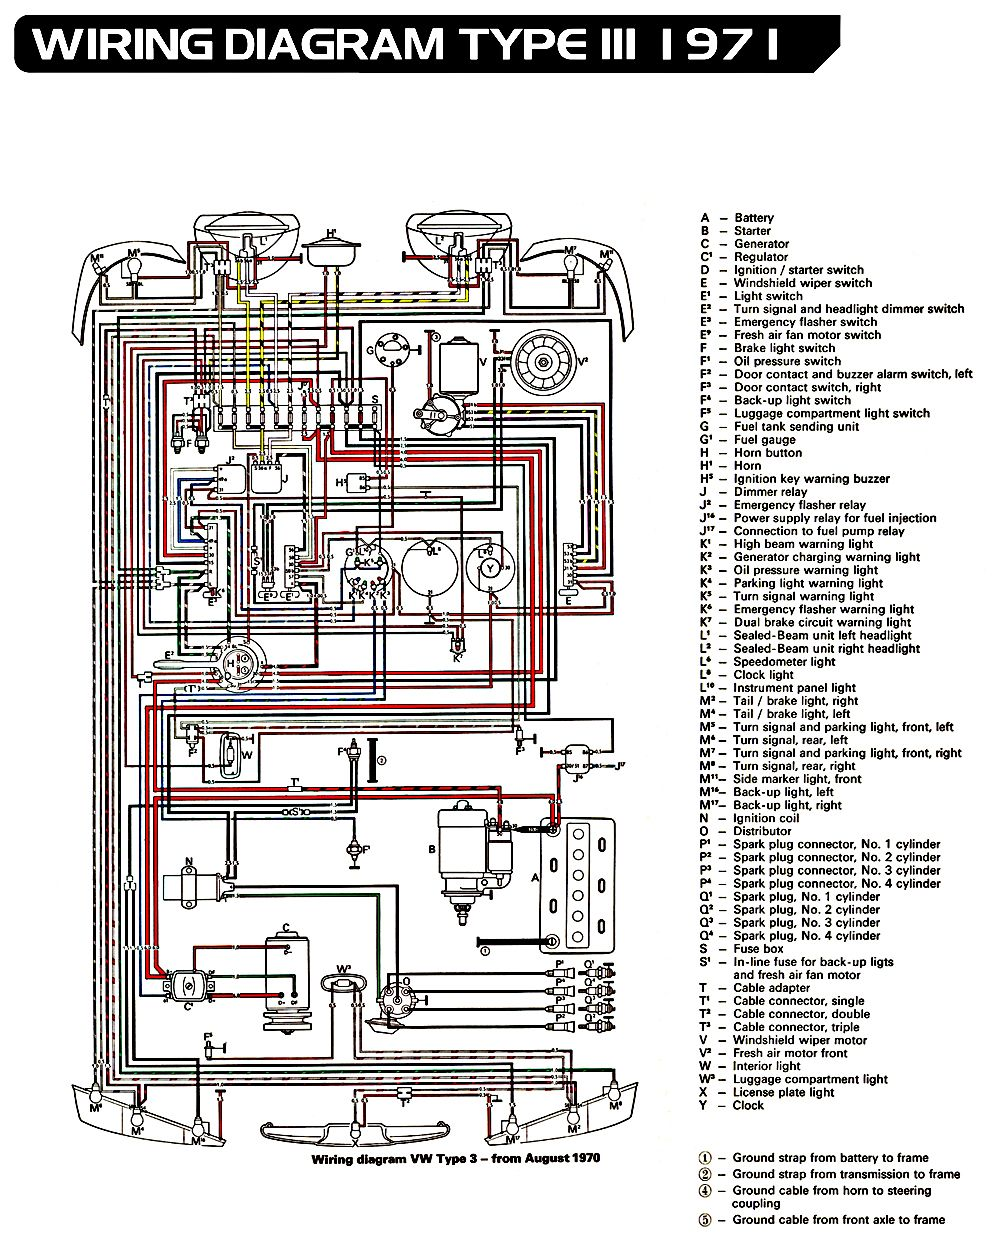 Terrific 1971 Type 3 Vw Wiring Diagram So Simple Compared To A Modern Ecu Wiring Cloud Funidienstapotheekhoekschewaardnl